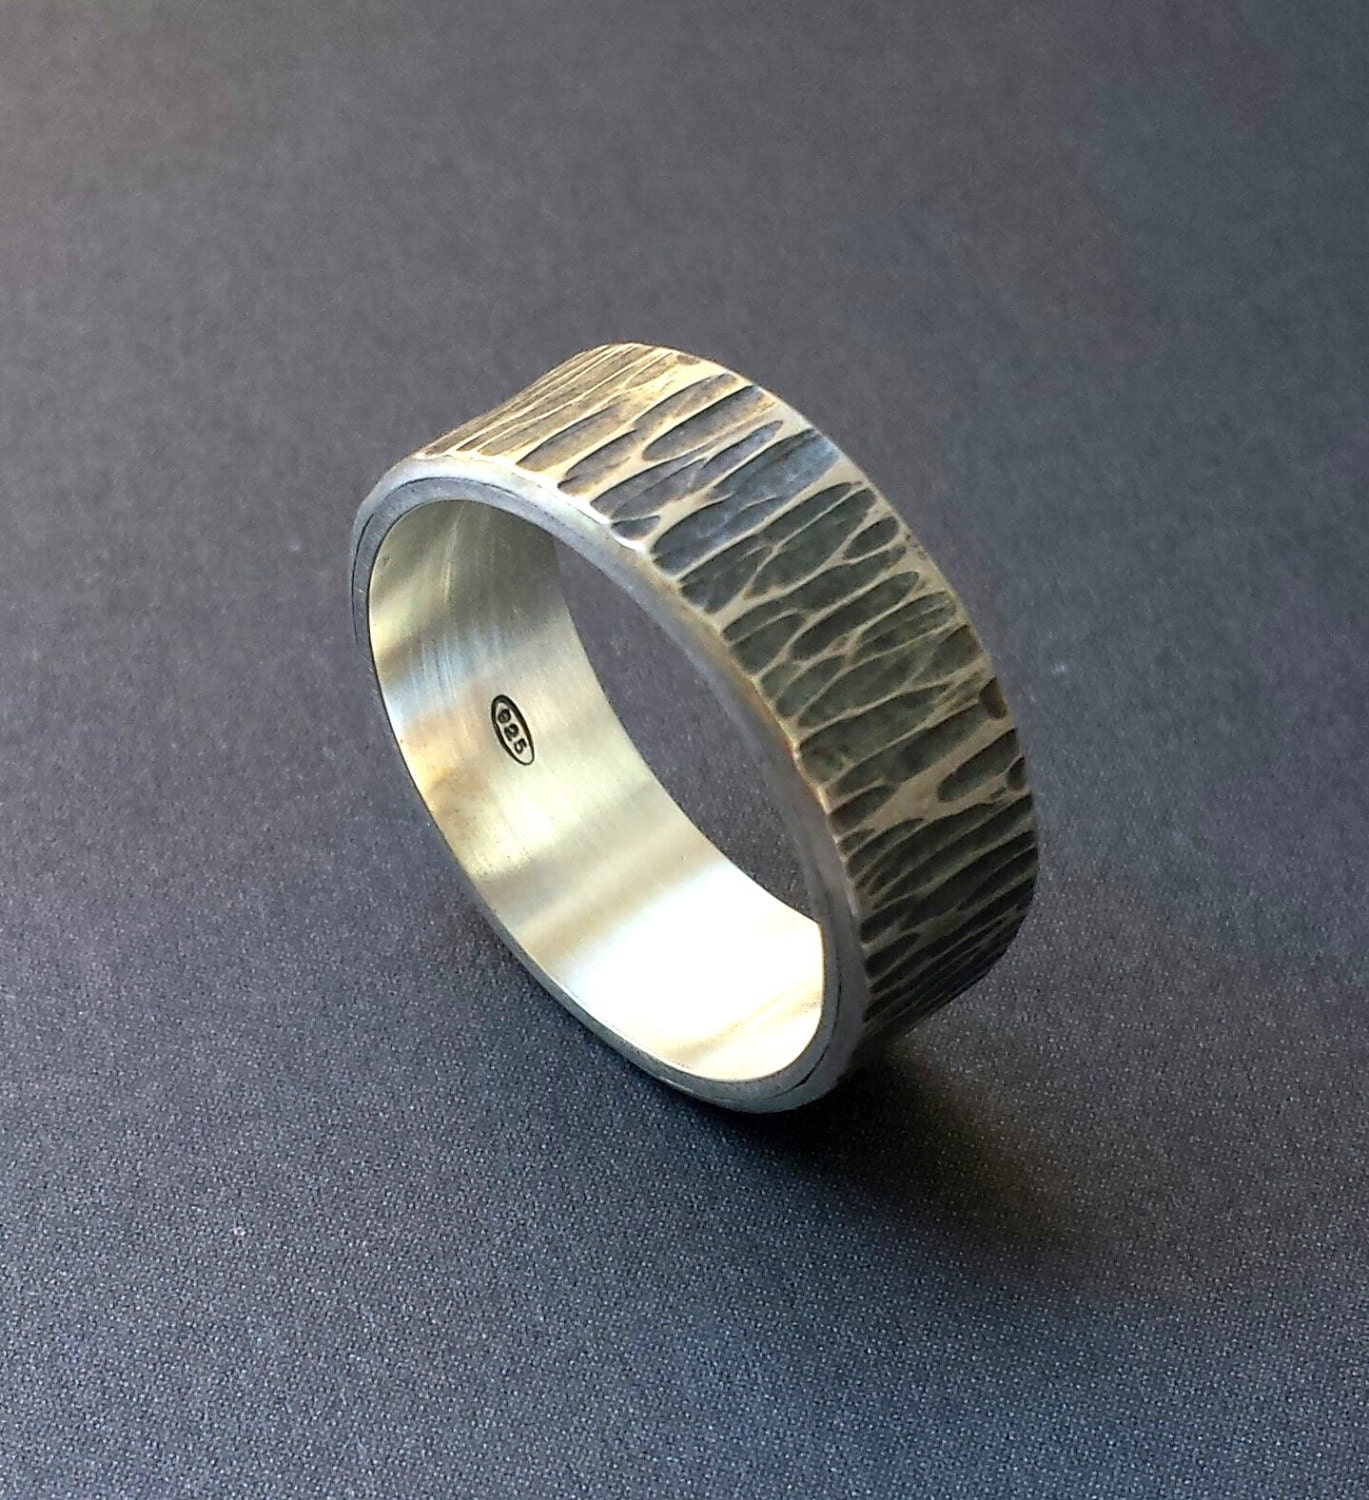 silver ring with engraved wood texture and personalized text